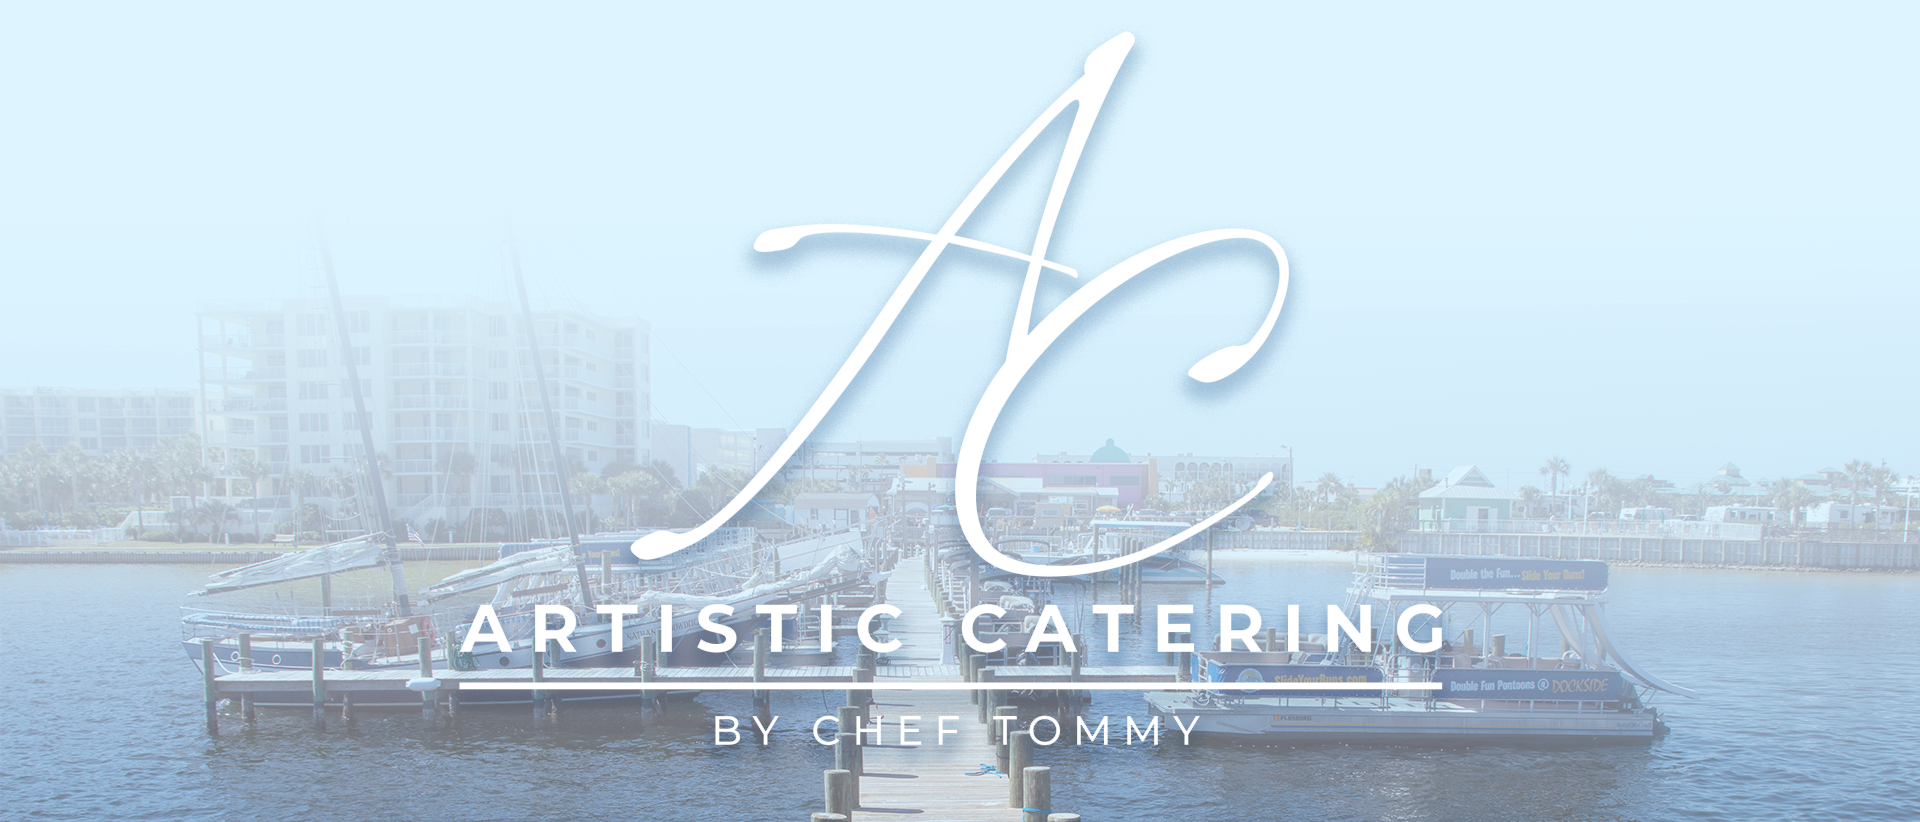 Artistic Catering